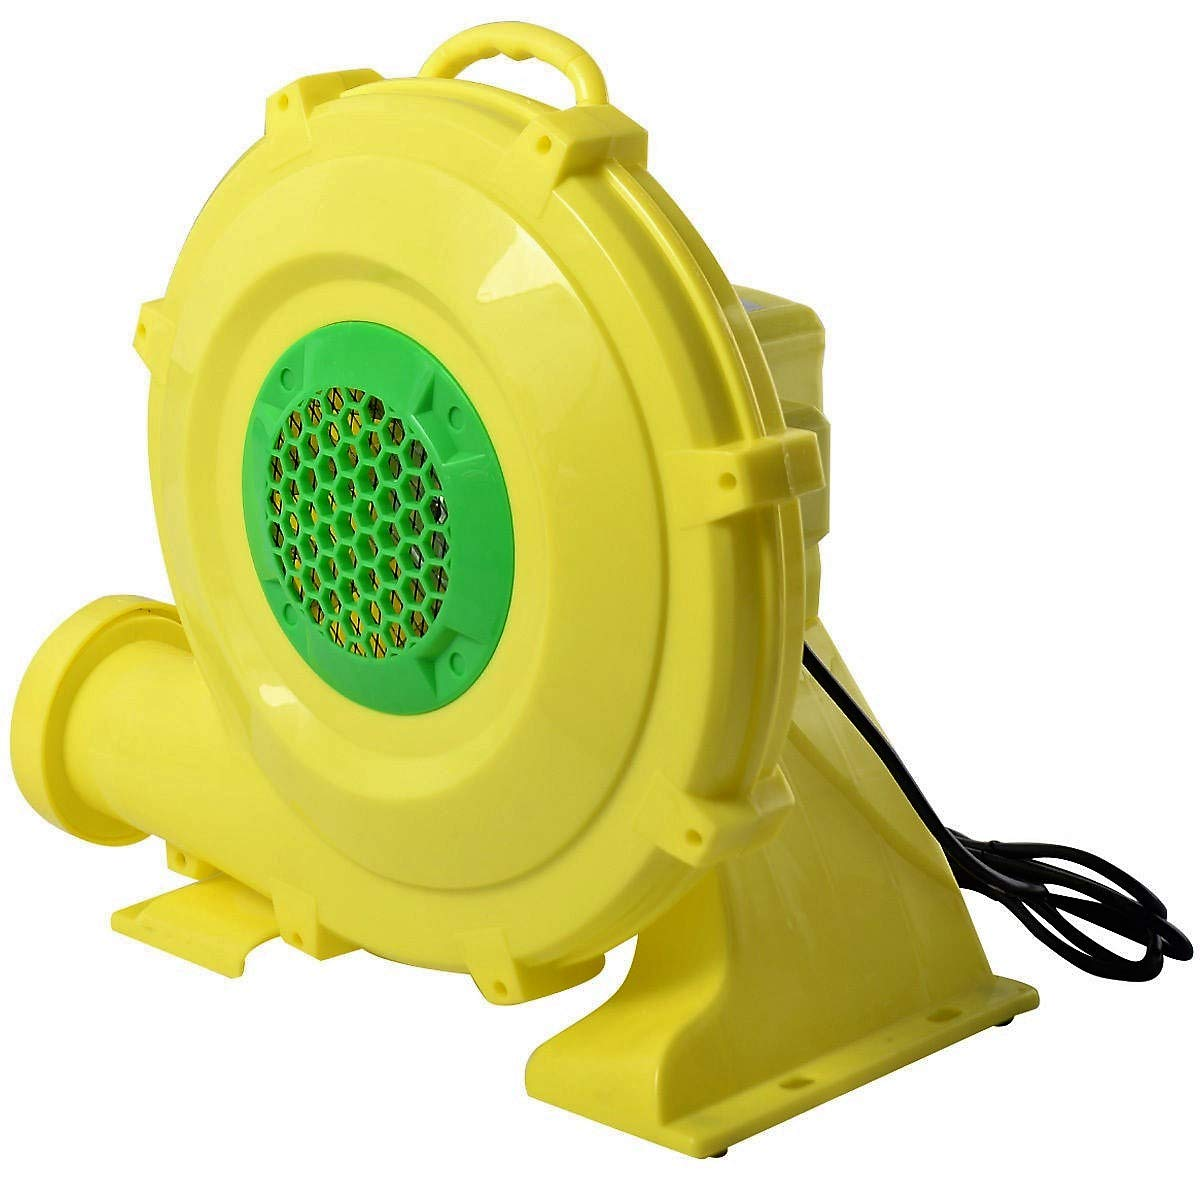 Lucky-gift - 680 W 1.0 HP Air Blower Pump Fan for Inflatable Bounce House - Air Blower Motor - Bounce Pump Air House Fan - Balloon Blower Pump Electric - 680 Watts Blowing - Compressor Bouncy Castle by Lucky-gift